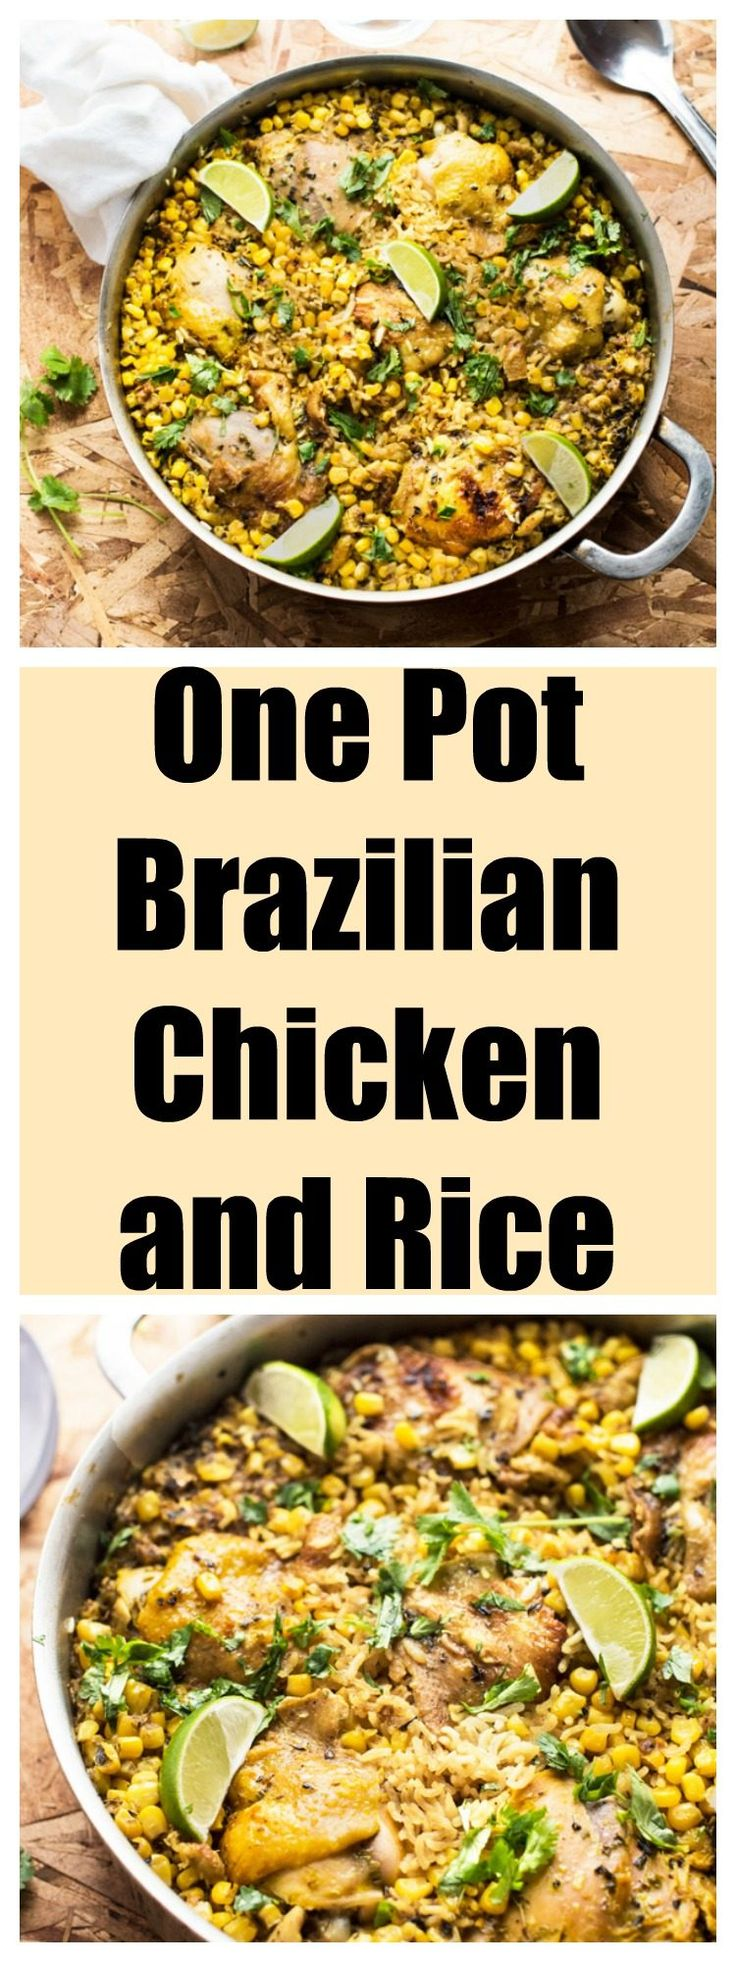 ONE POT BRAZILIAN CHICKEN AND RICE (Mexican Chicken Crockpot)